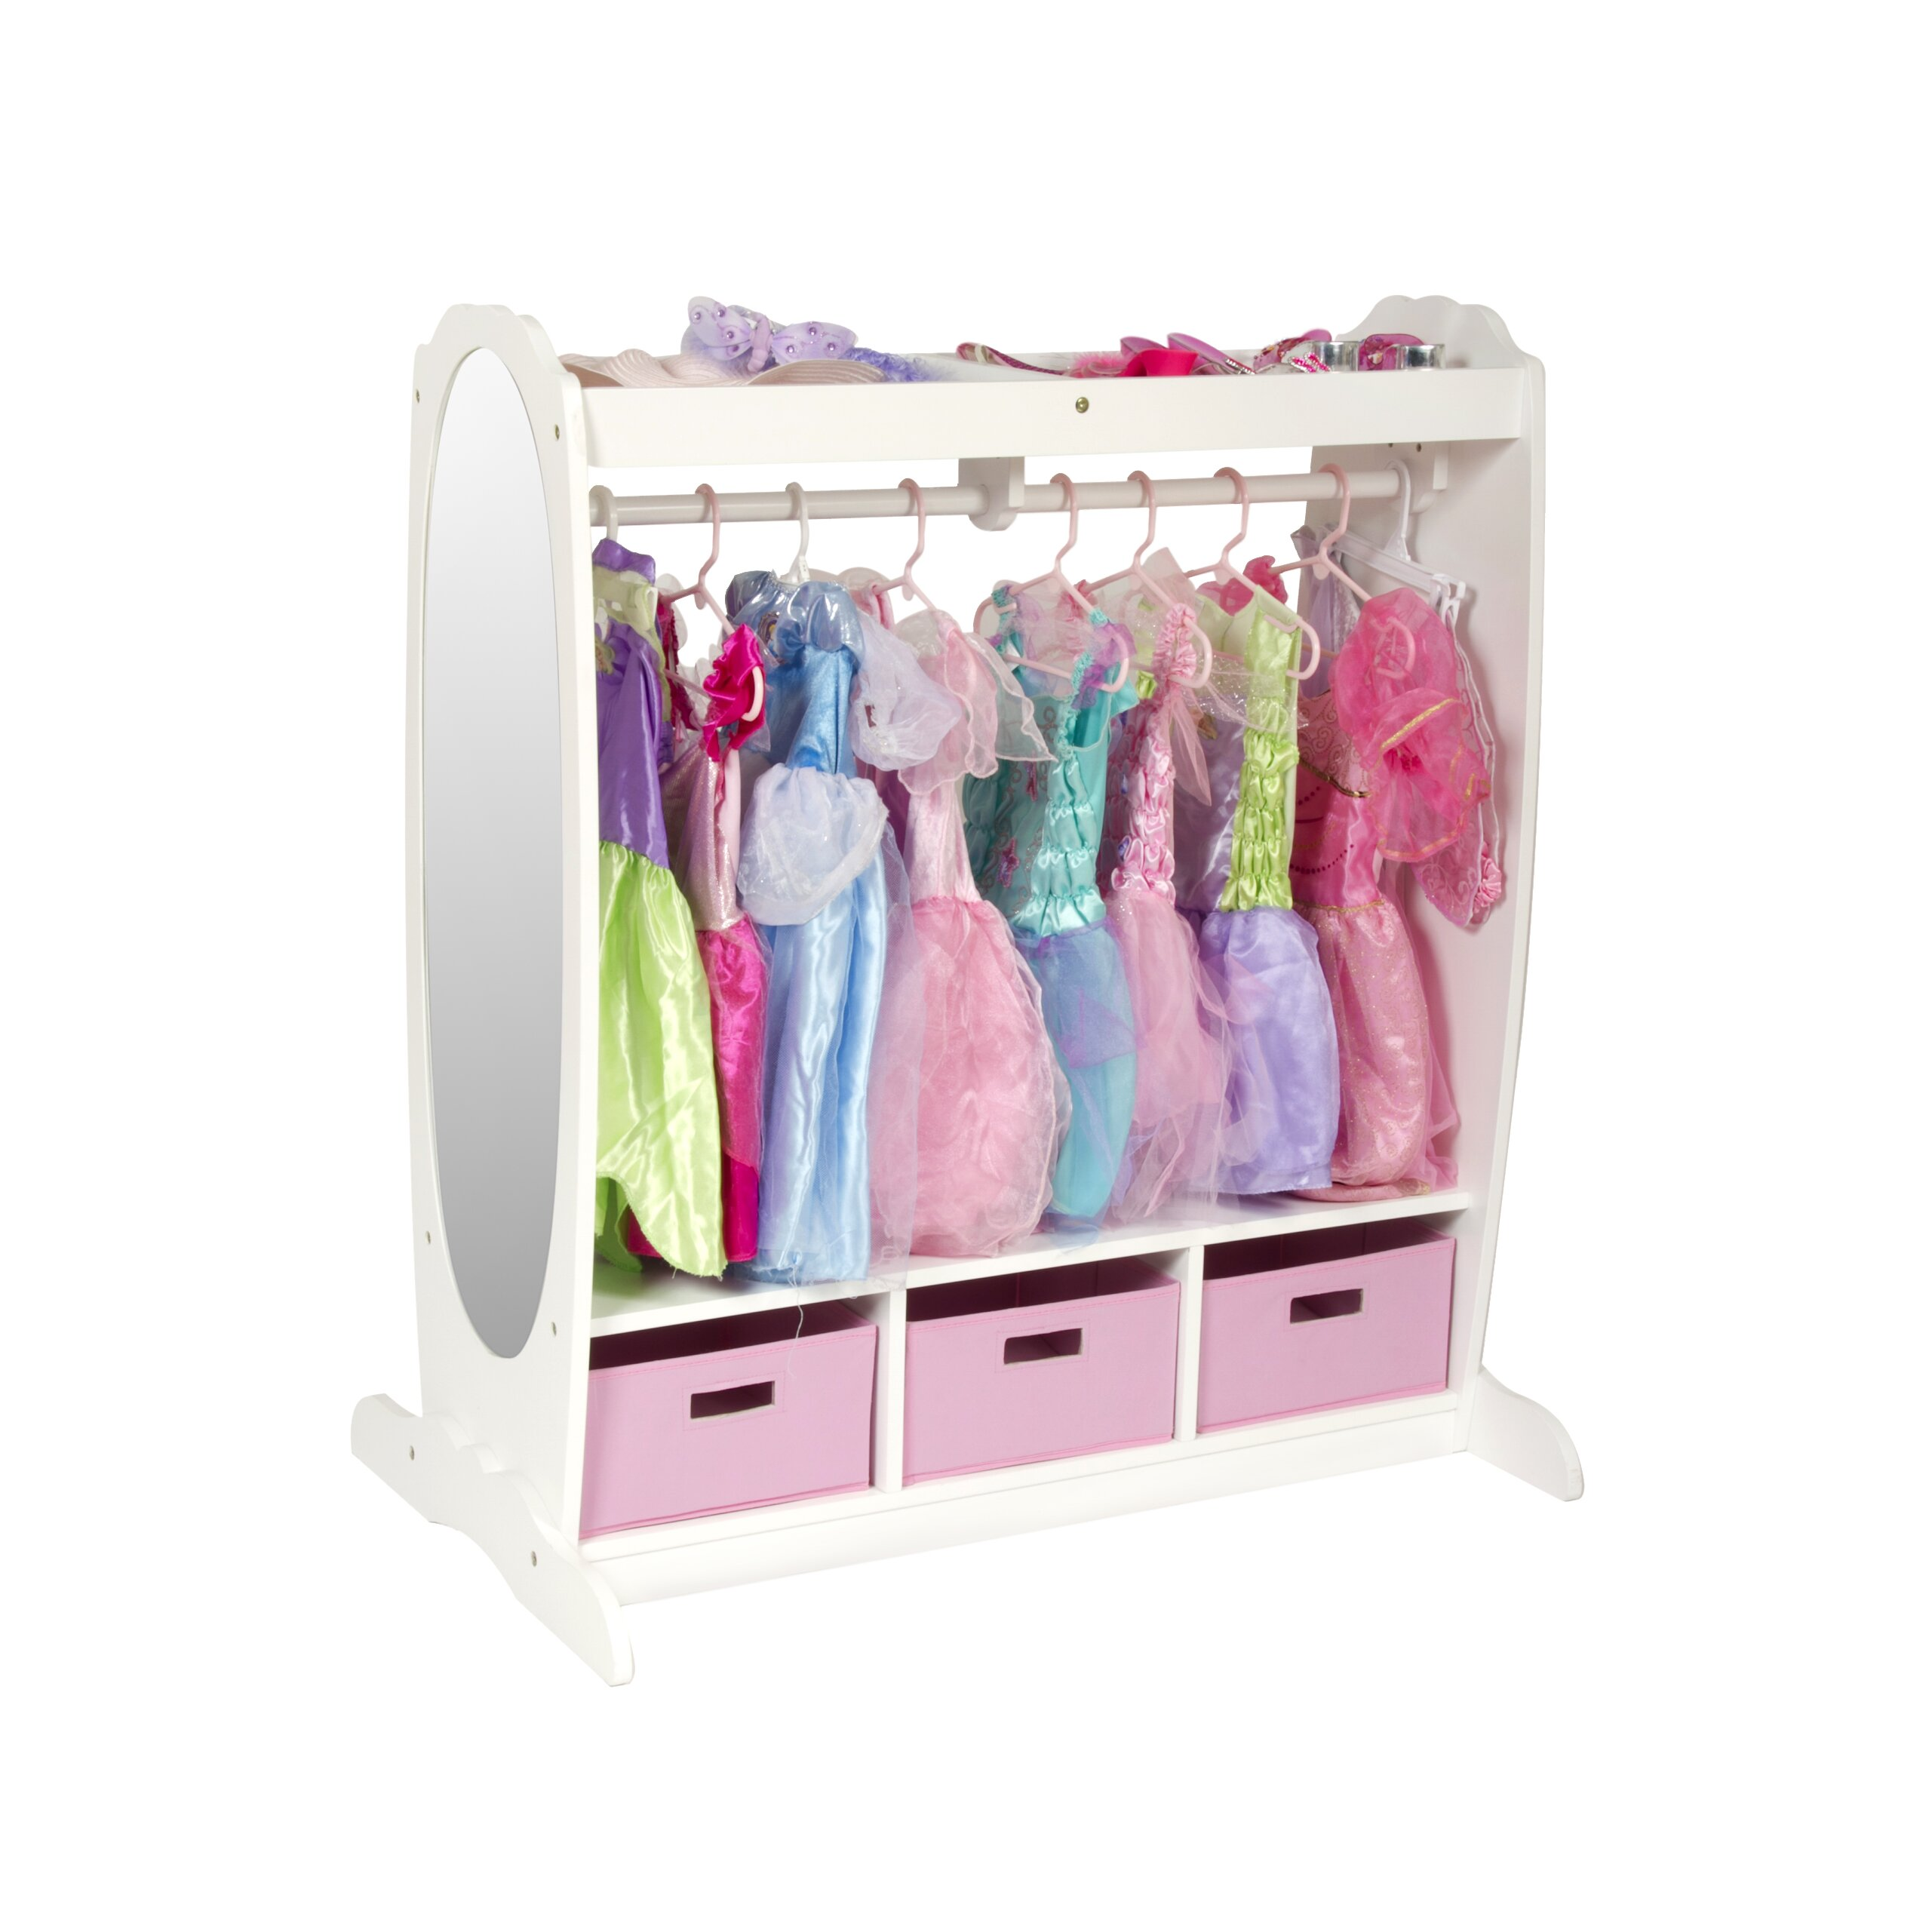 Guidecraft Dress Up Storage Closet Amp Reviews Wayfair